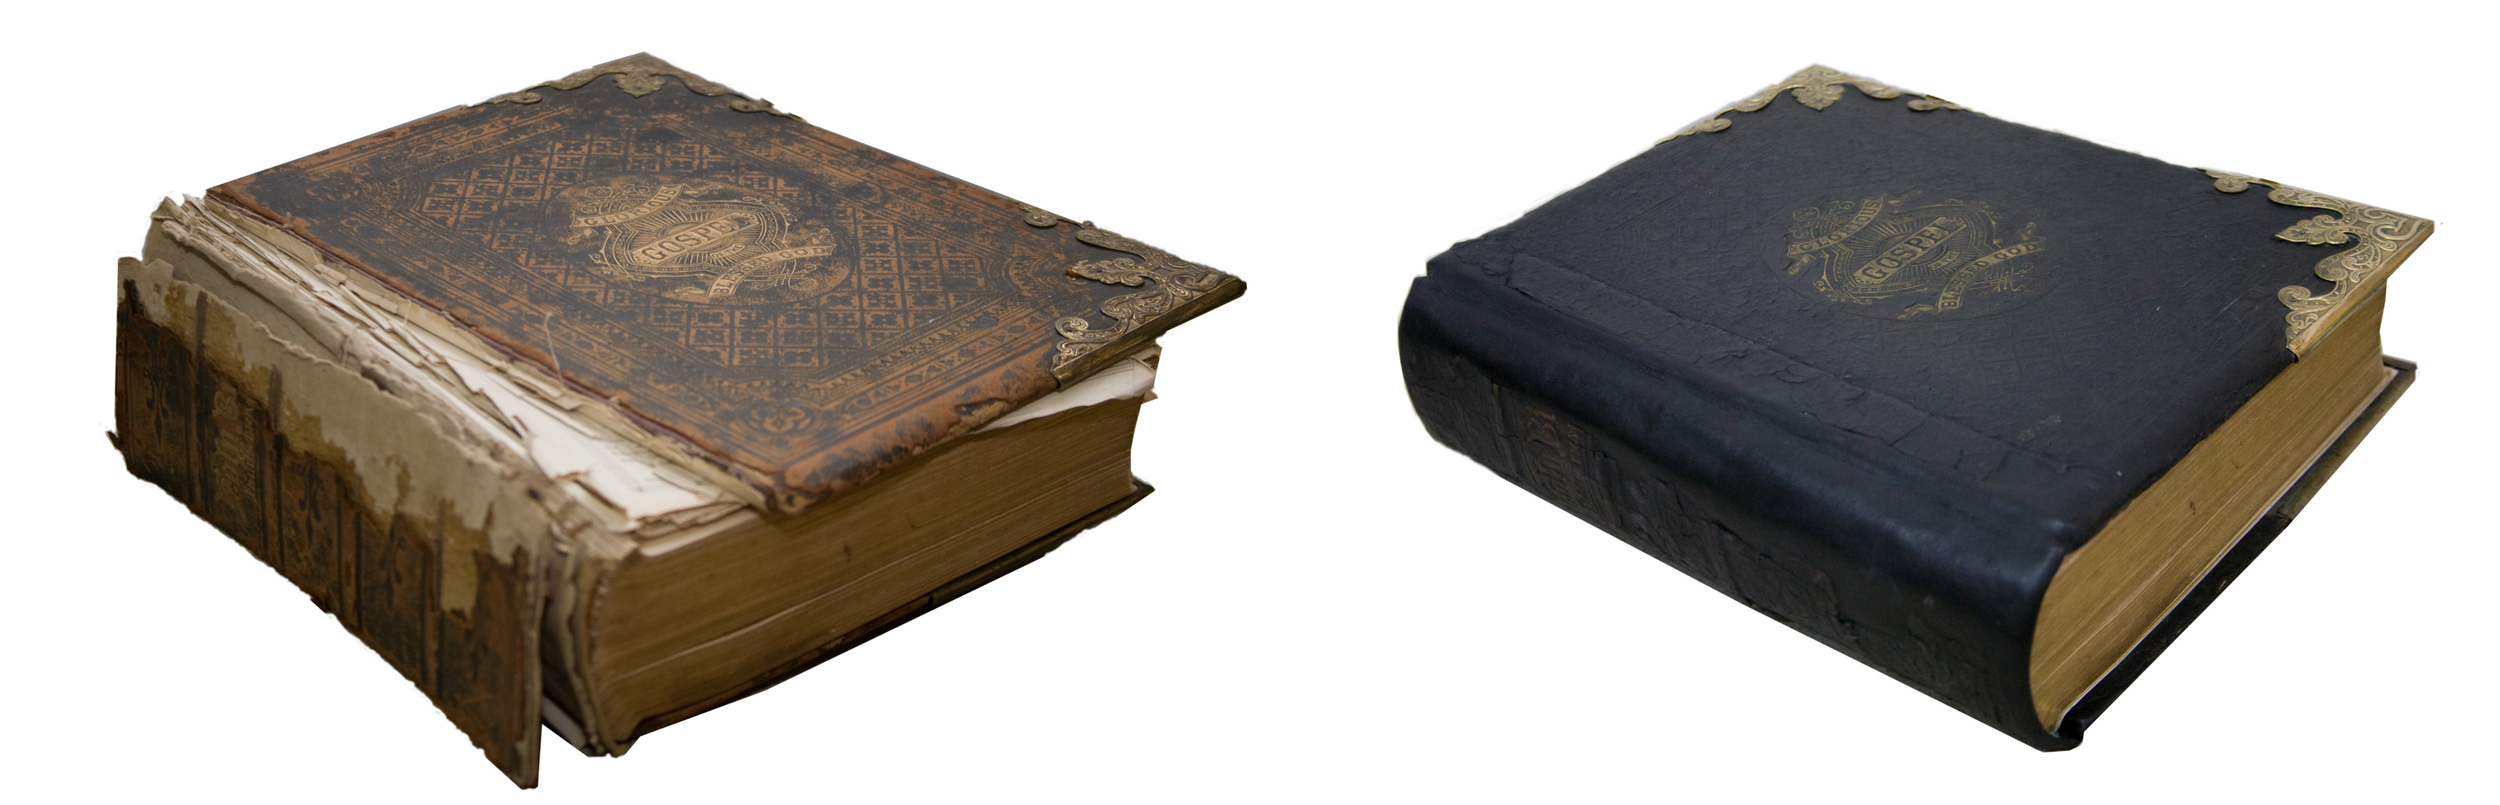 A Family Bible before and after restoration